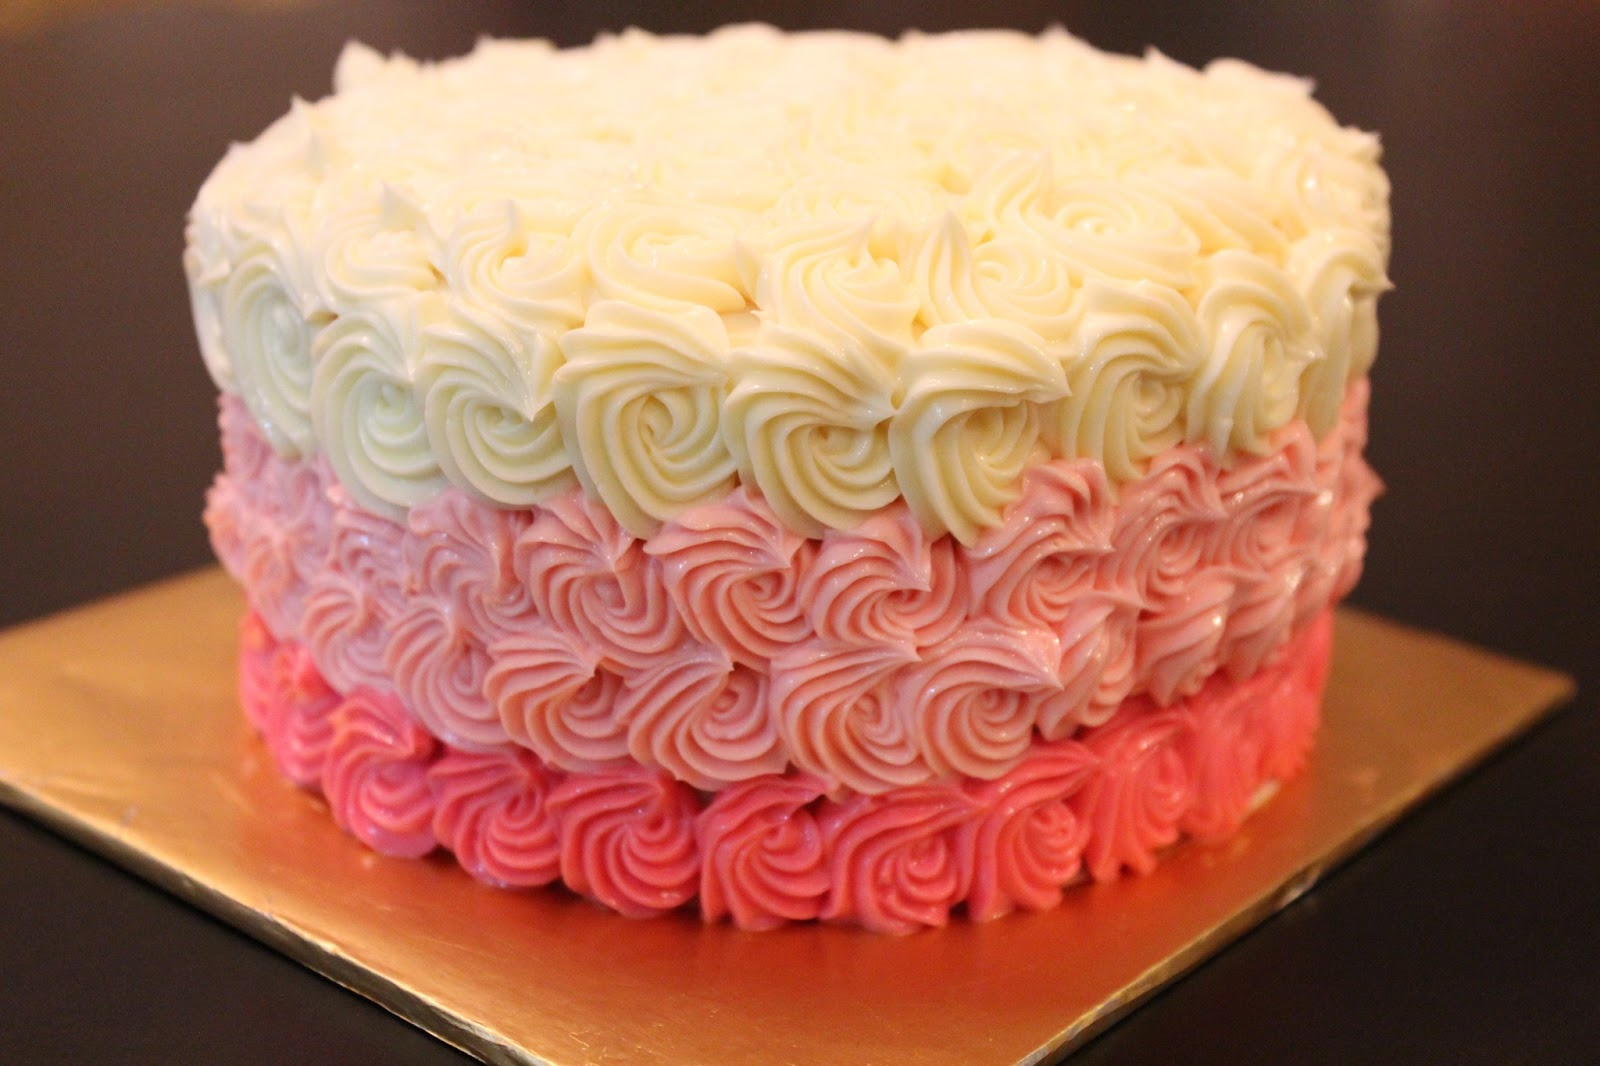 Cake With Icing In It : Bluepandacakes: Rainbow Cake with Ombre Buttercream Frosting